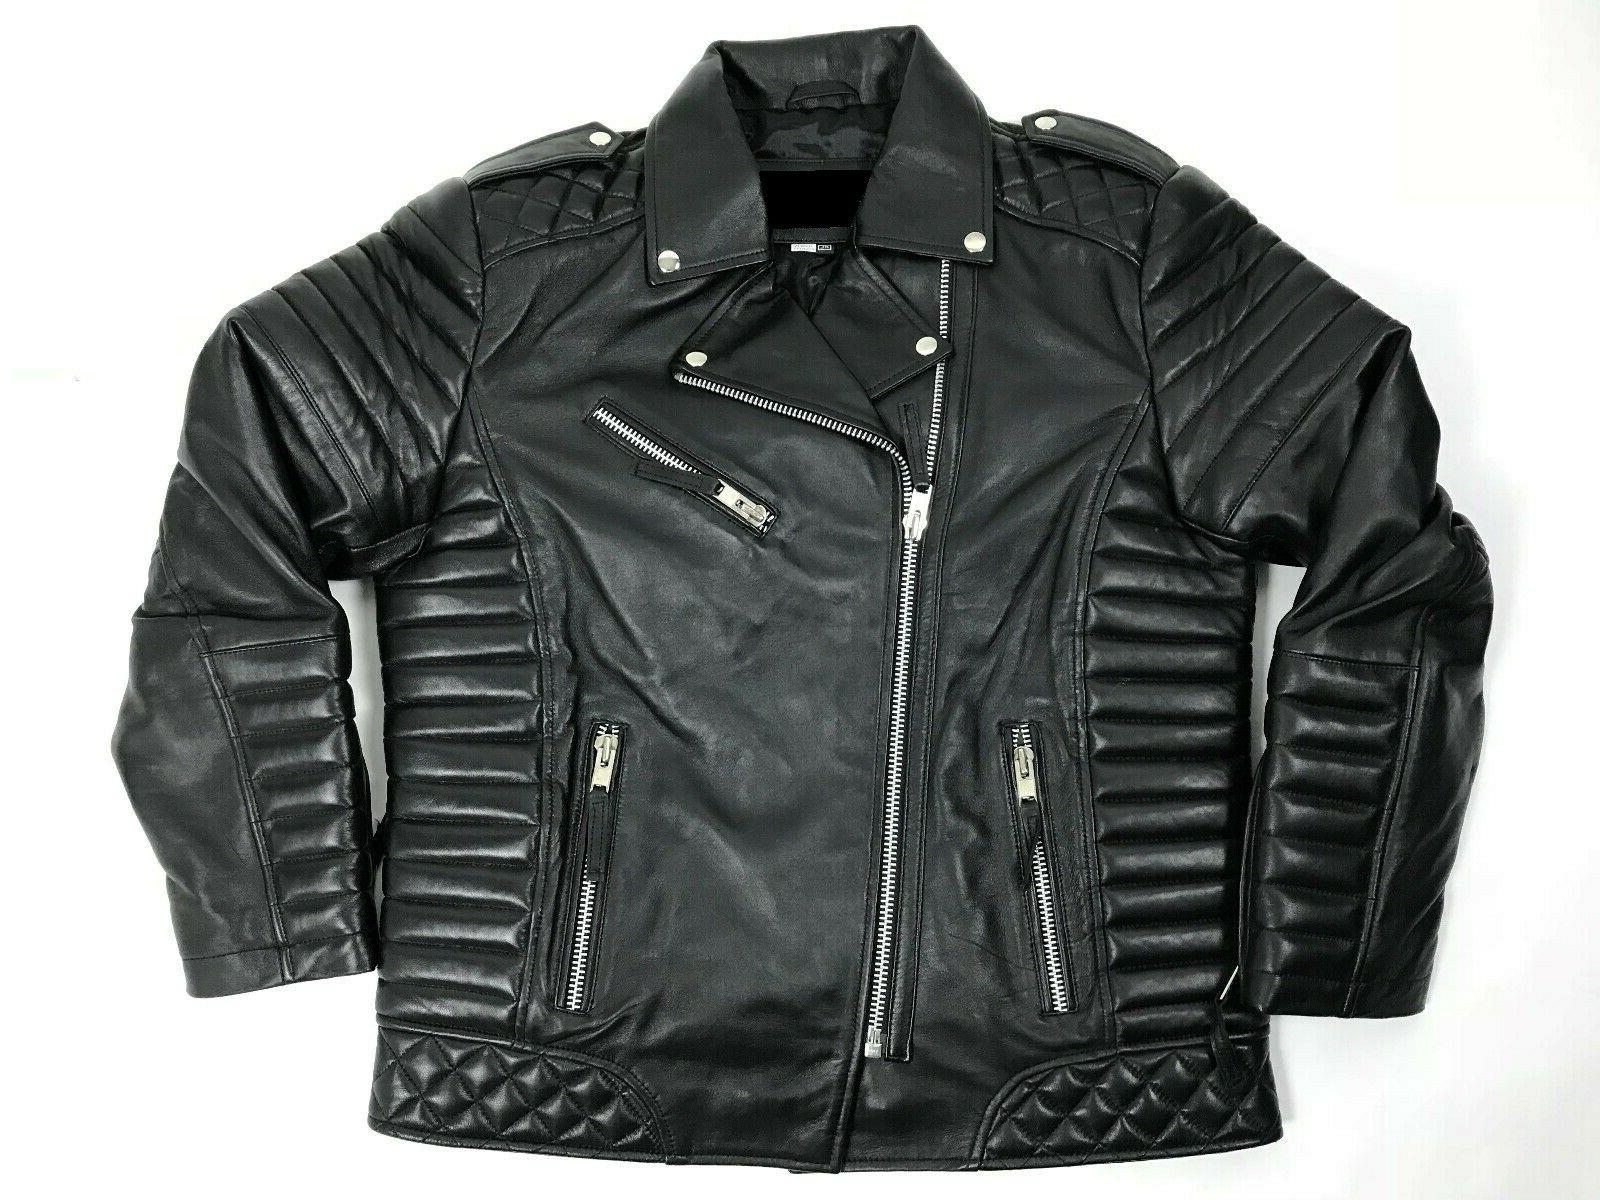 MENS GENUINE LAMBSKIN LEATHER BIKER JACKET MOTORCYCLE BLACK